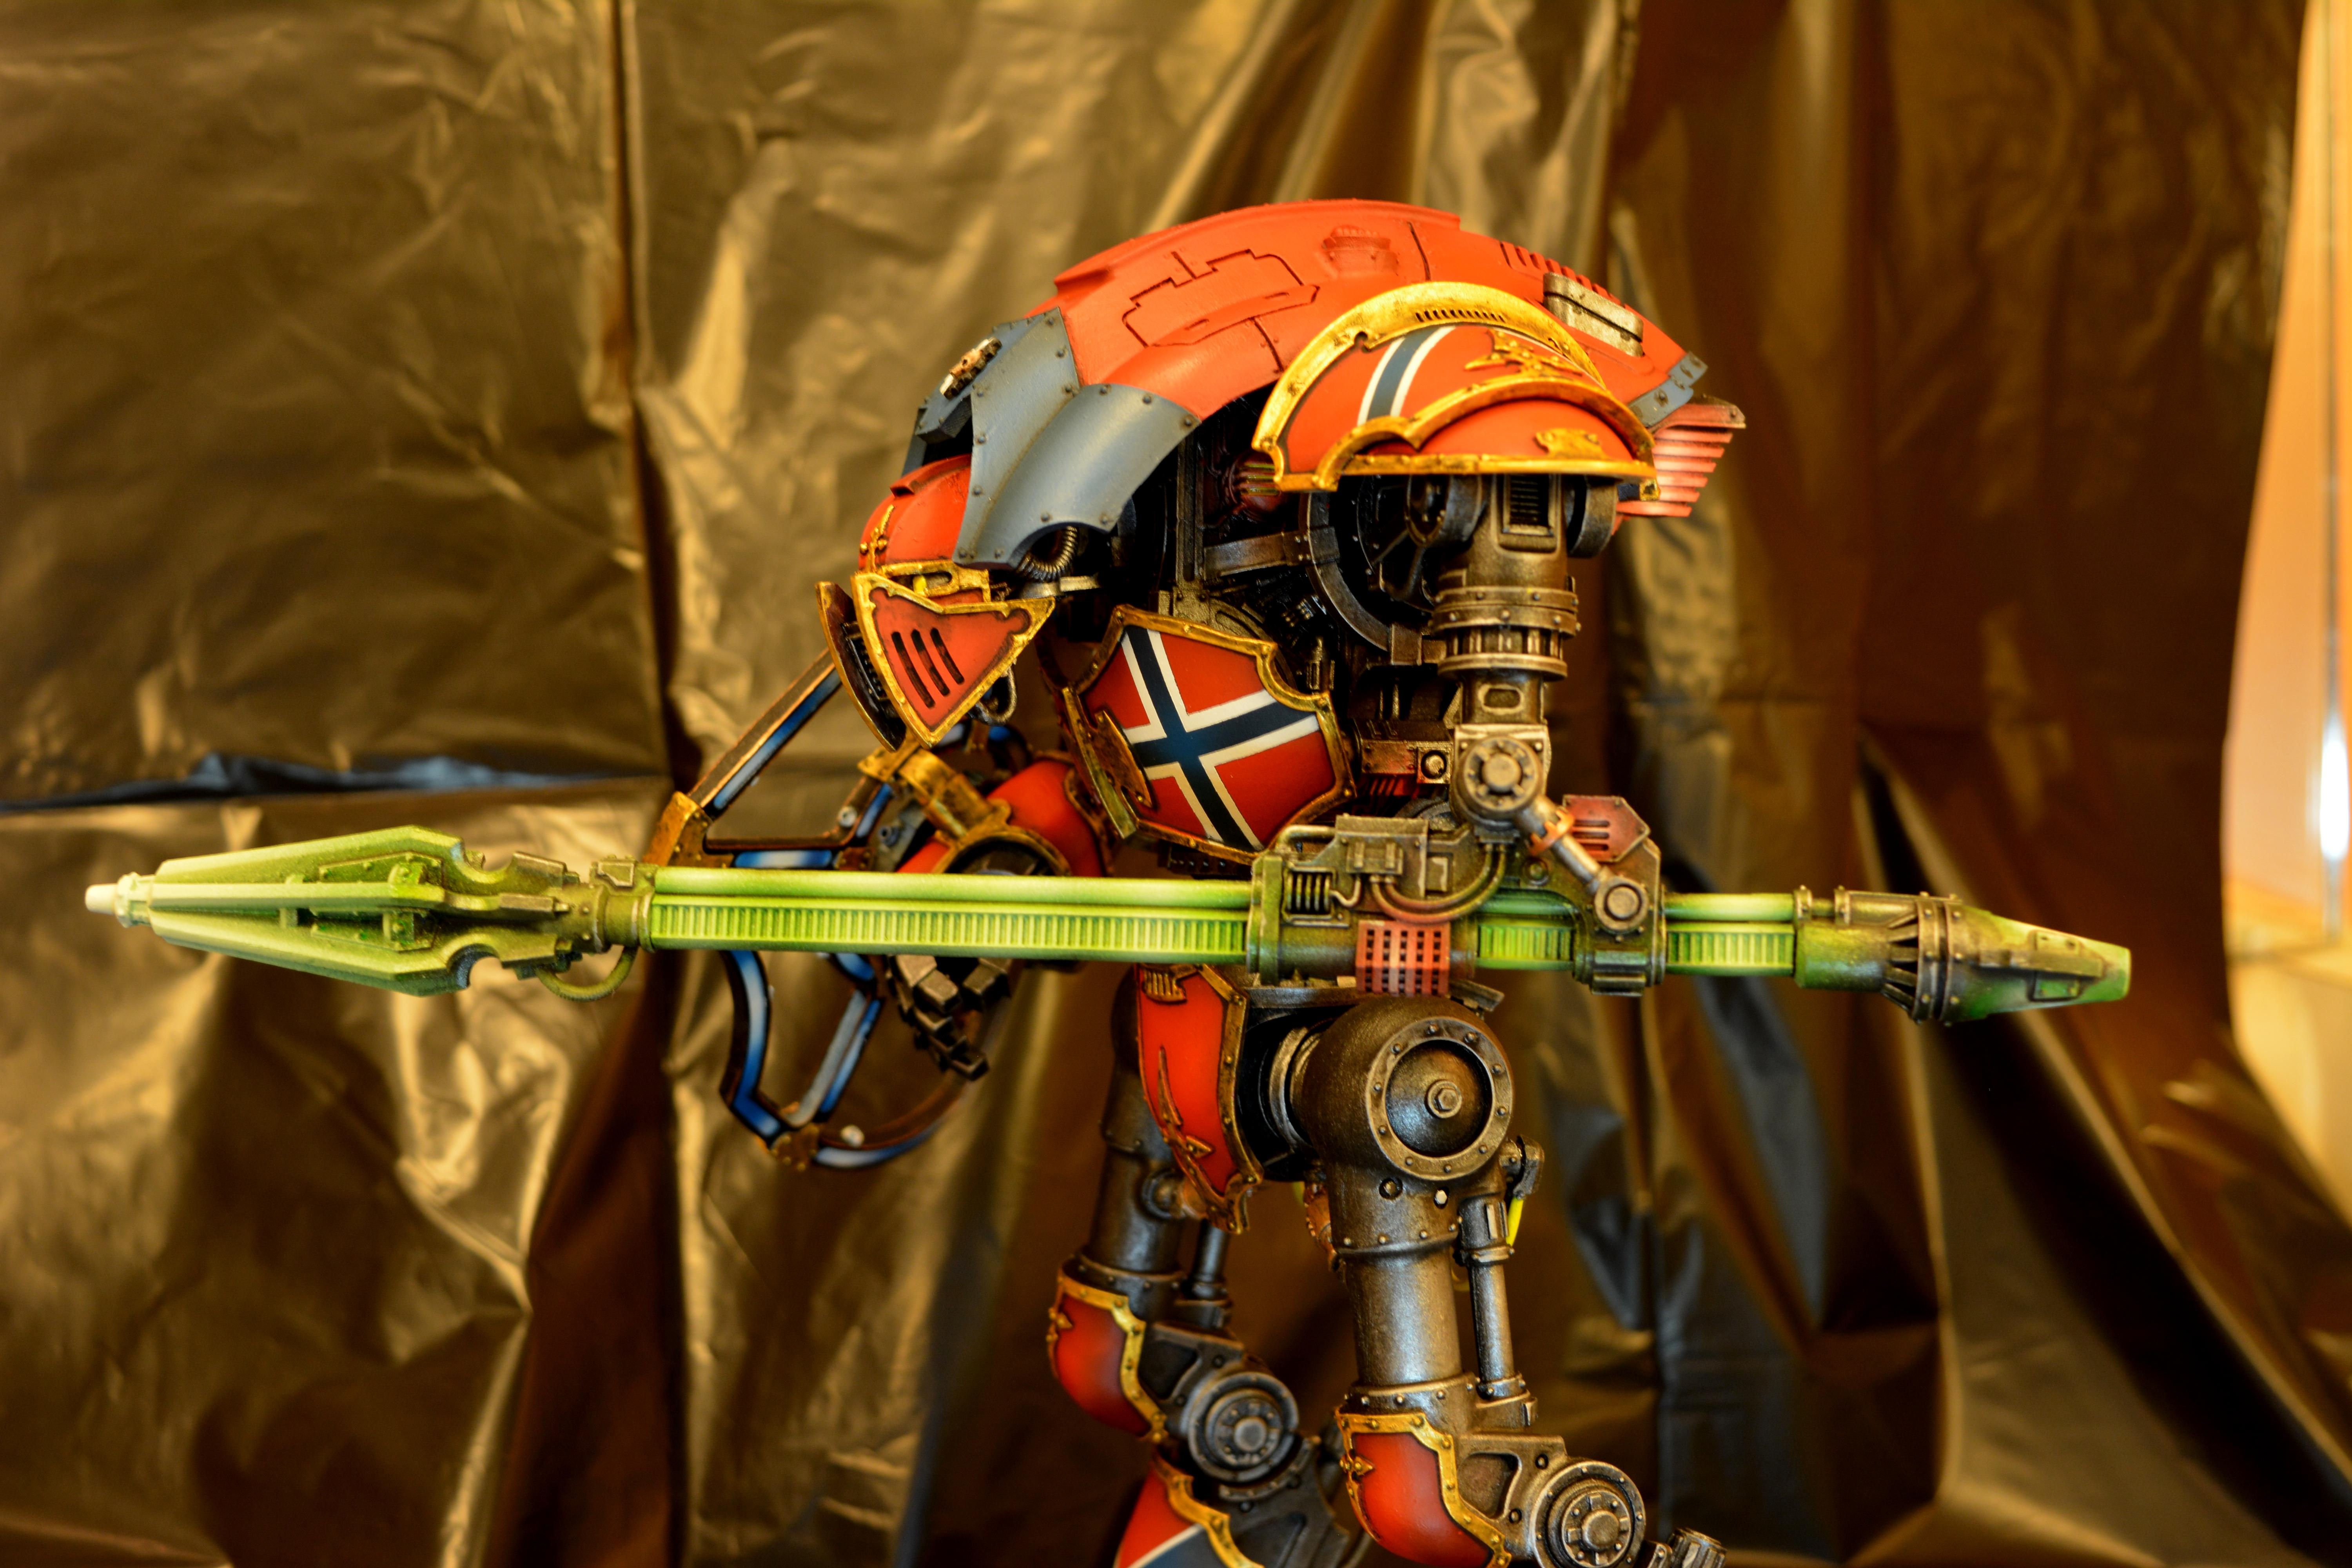 Imperial, Iom, Knight Lacner, Knight Lancer, Knights, Lancer, Norway